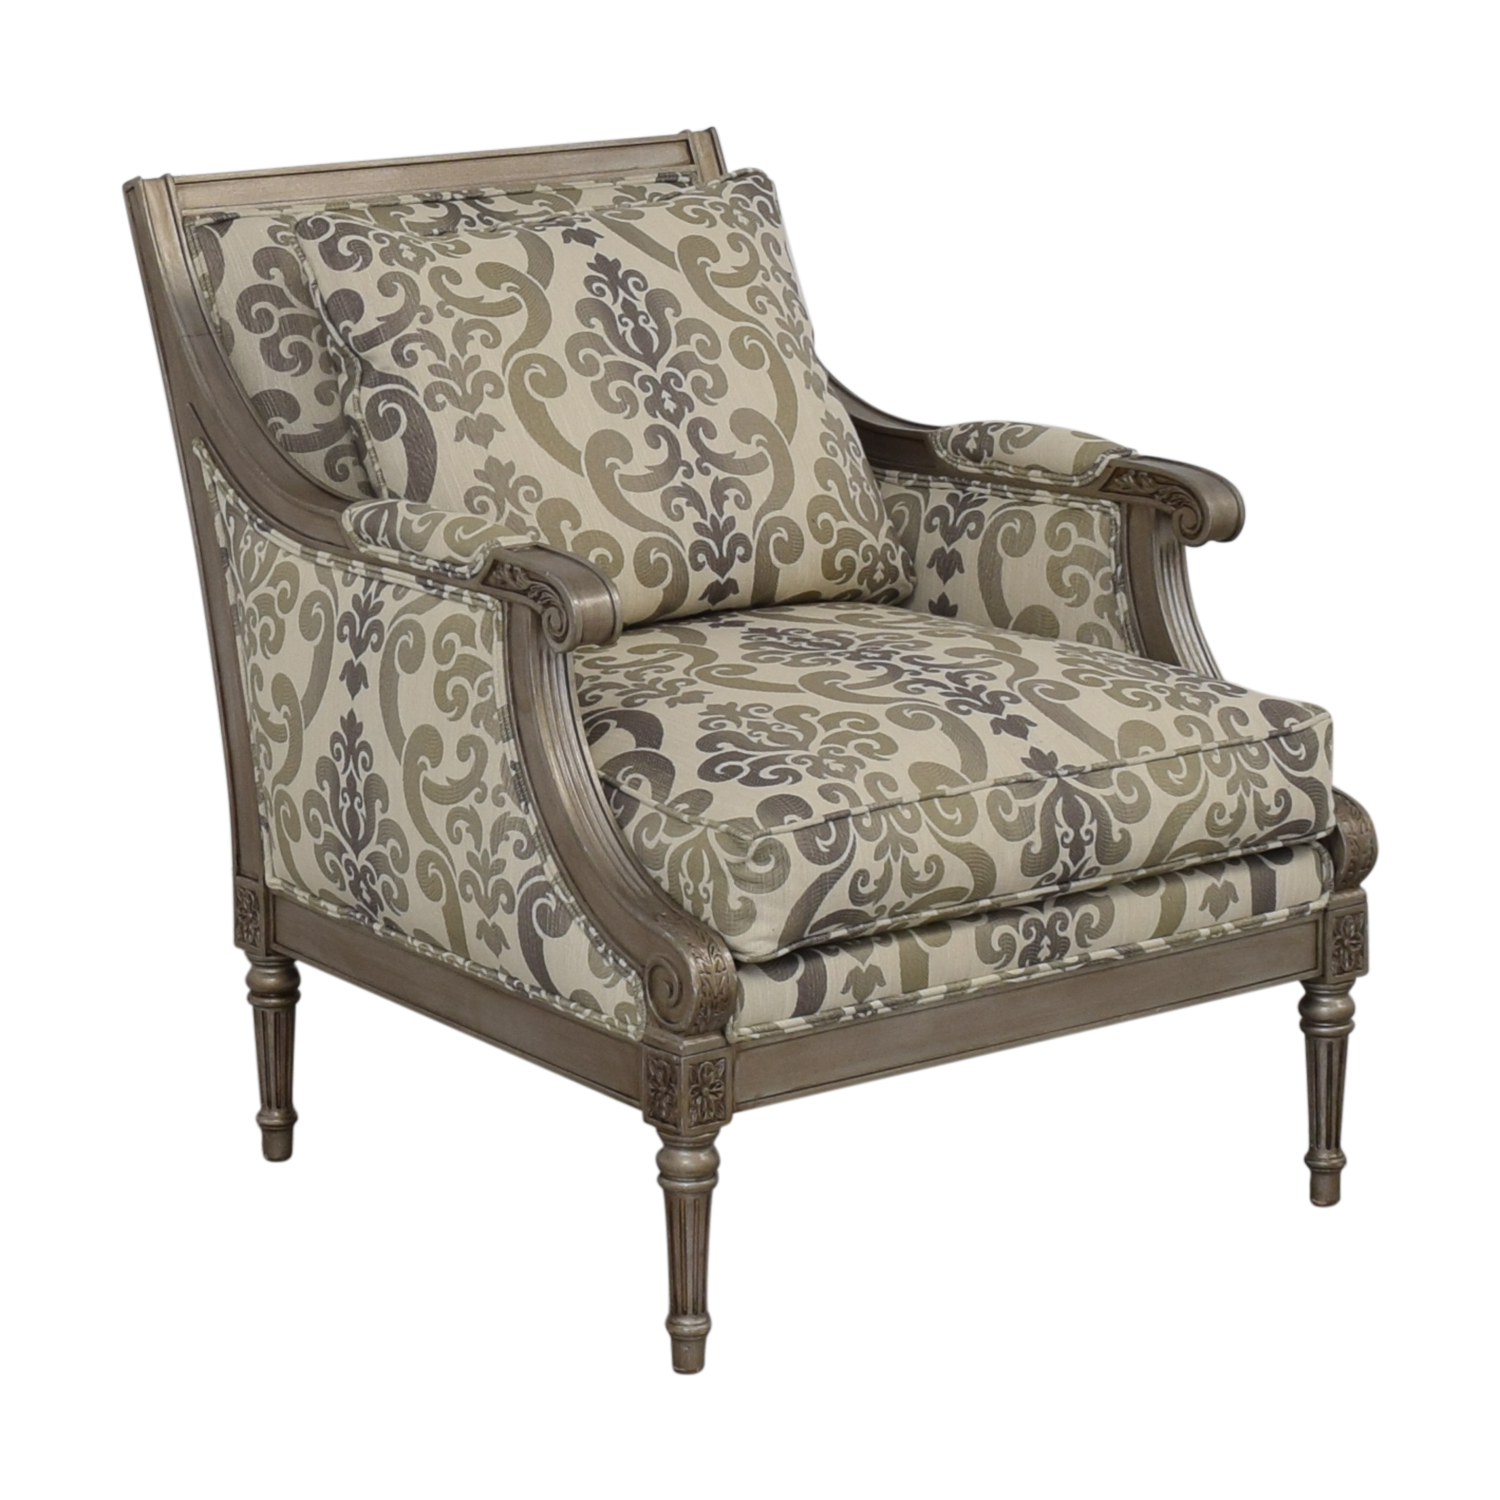 shop Ethan Allen Fairfax Chair Ethan Allen Accent Chairs